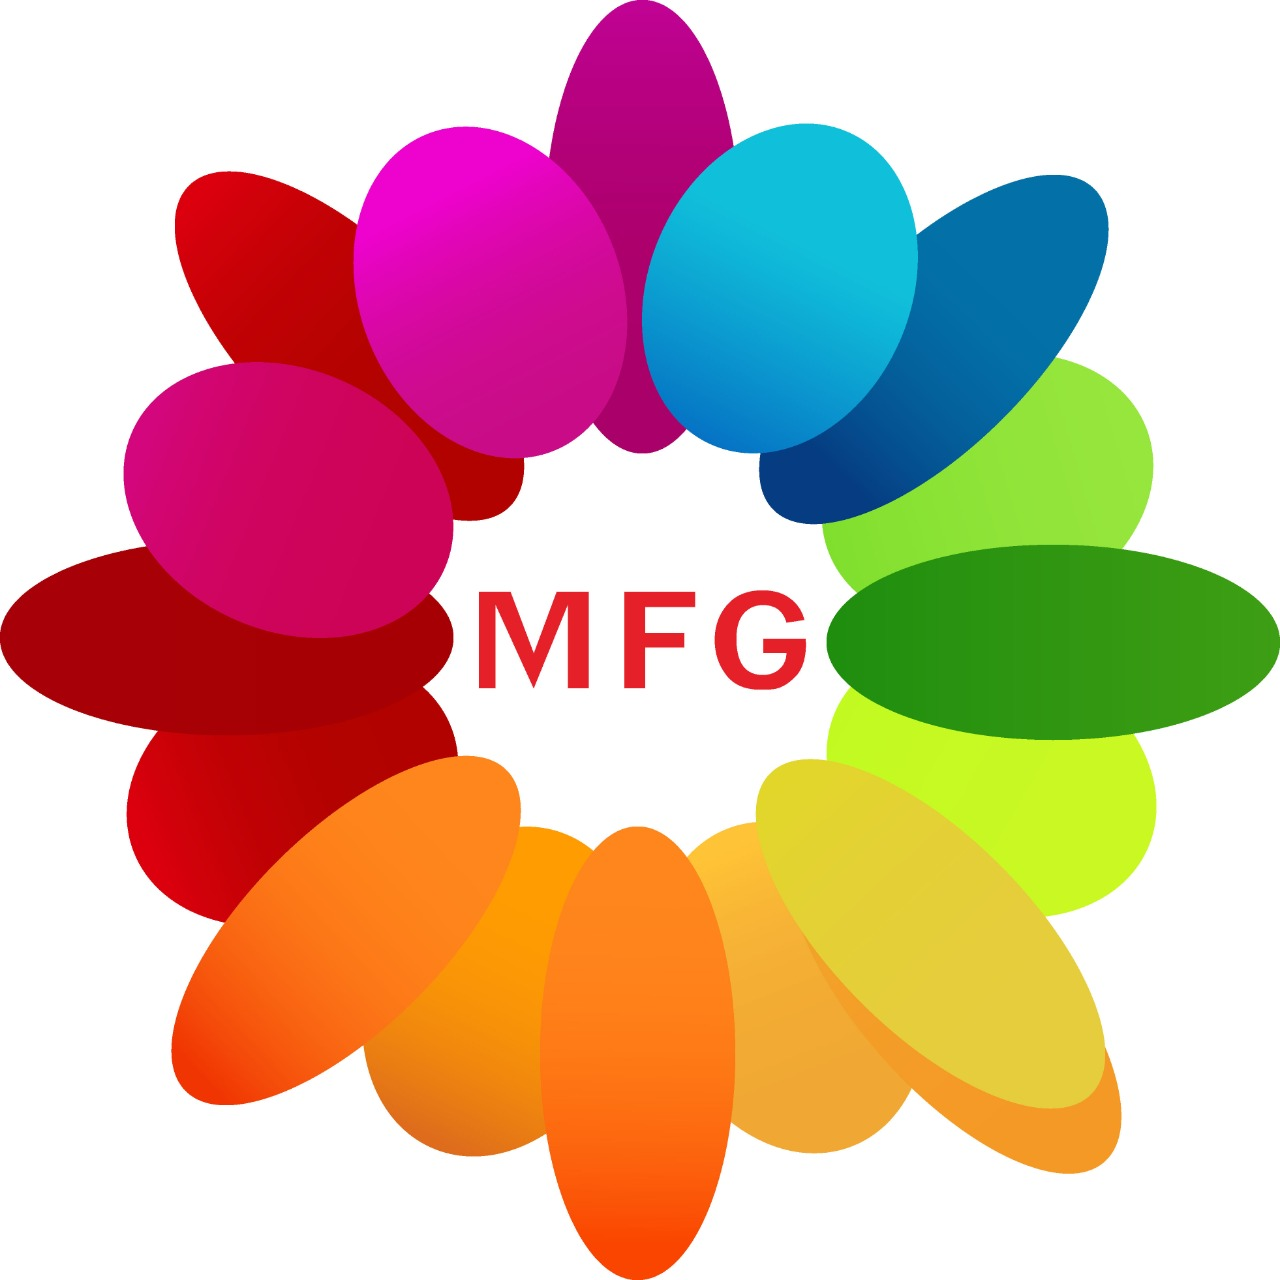 Bunch of yellow asiatic lilies with 1 kg chocolate truffle cake with 2 feet height teddybear